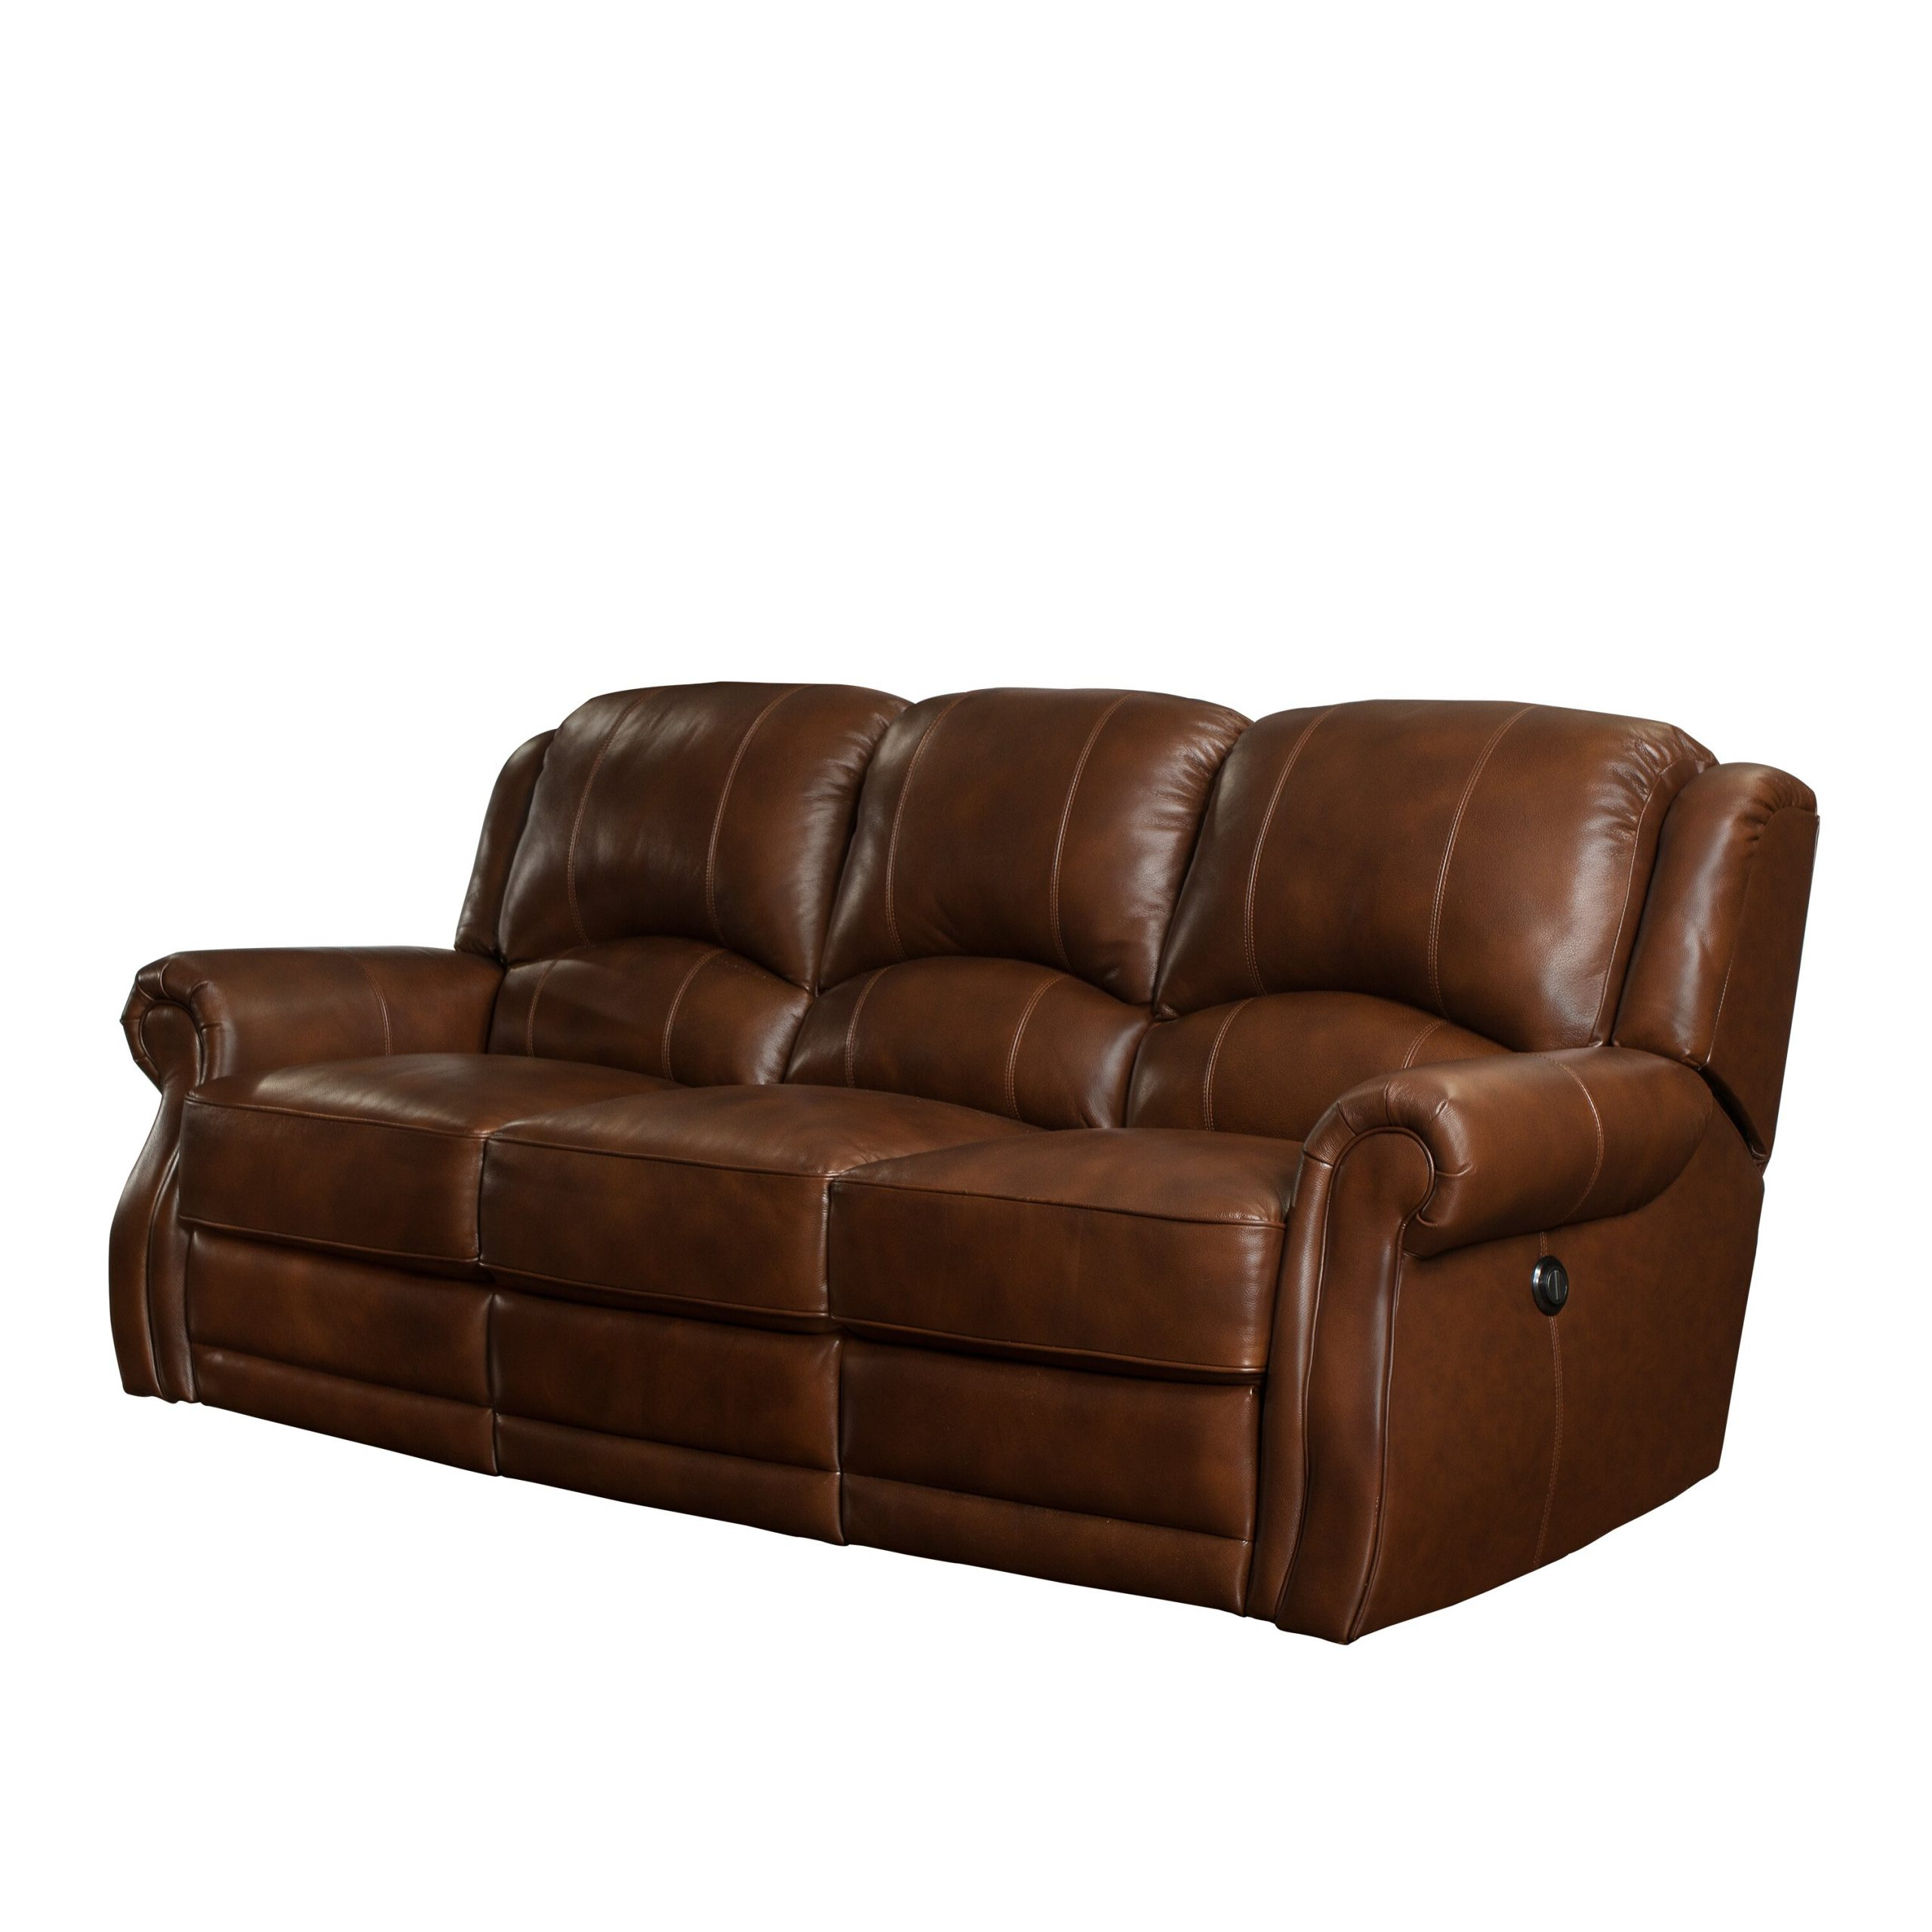 Barcalounger Cedar Hill Casual Comforts Power Leather For Preferred Charleston Power Reclining Sofas (View 12 of 20)